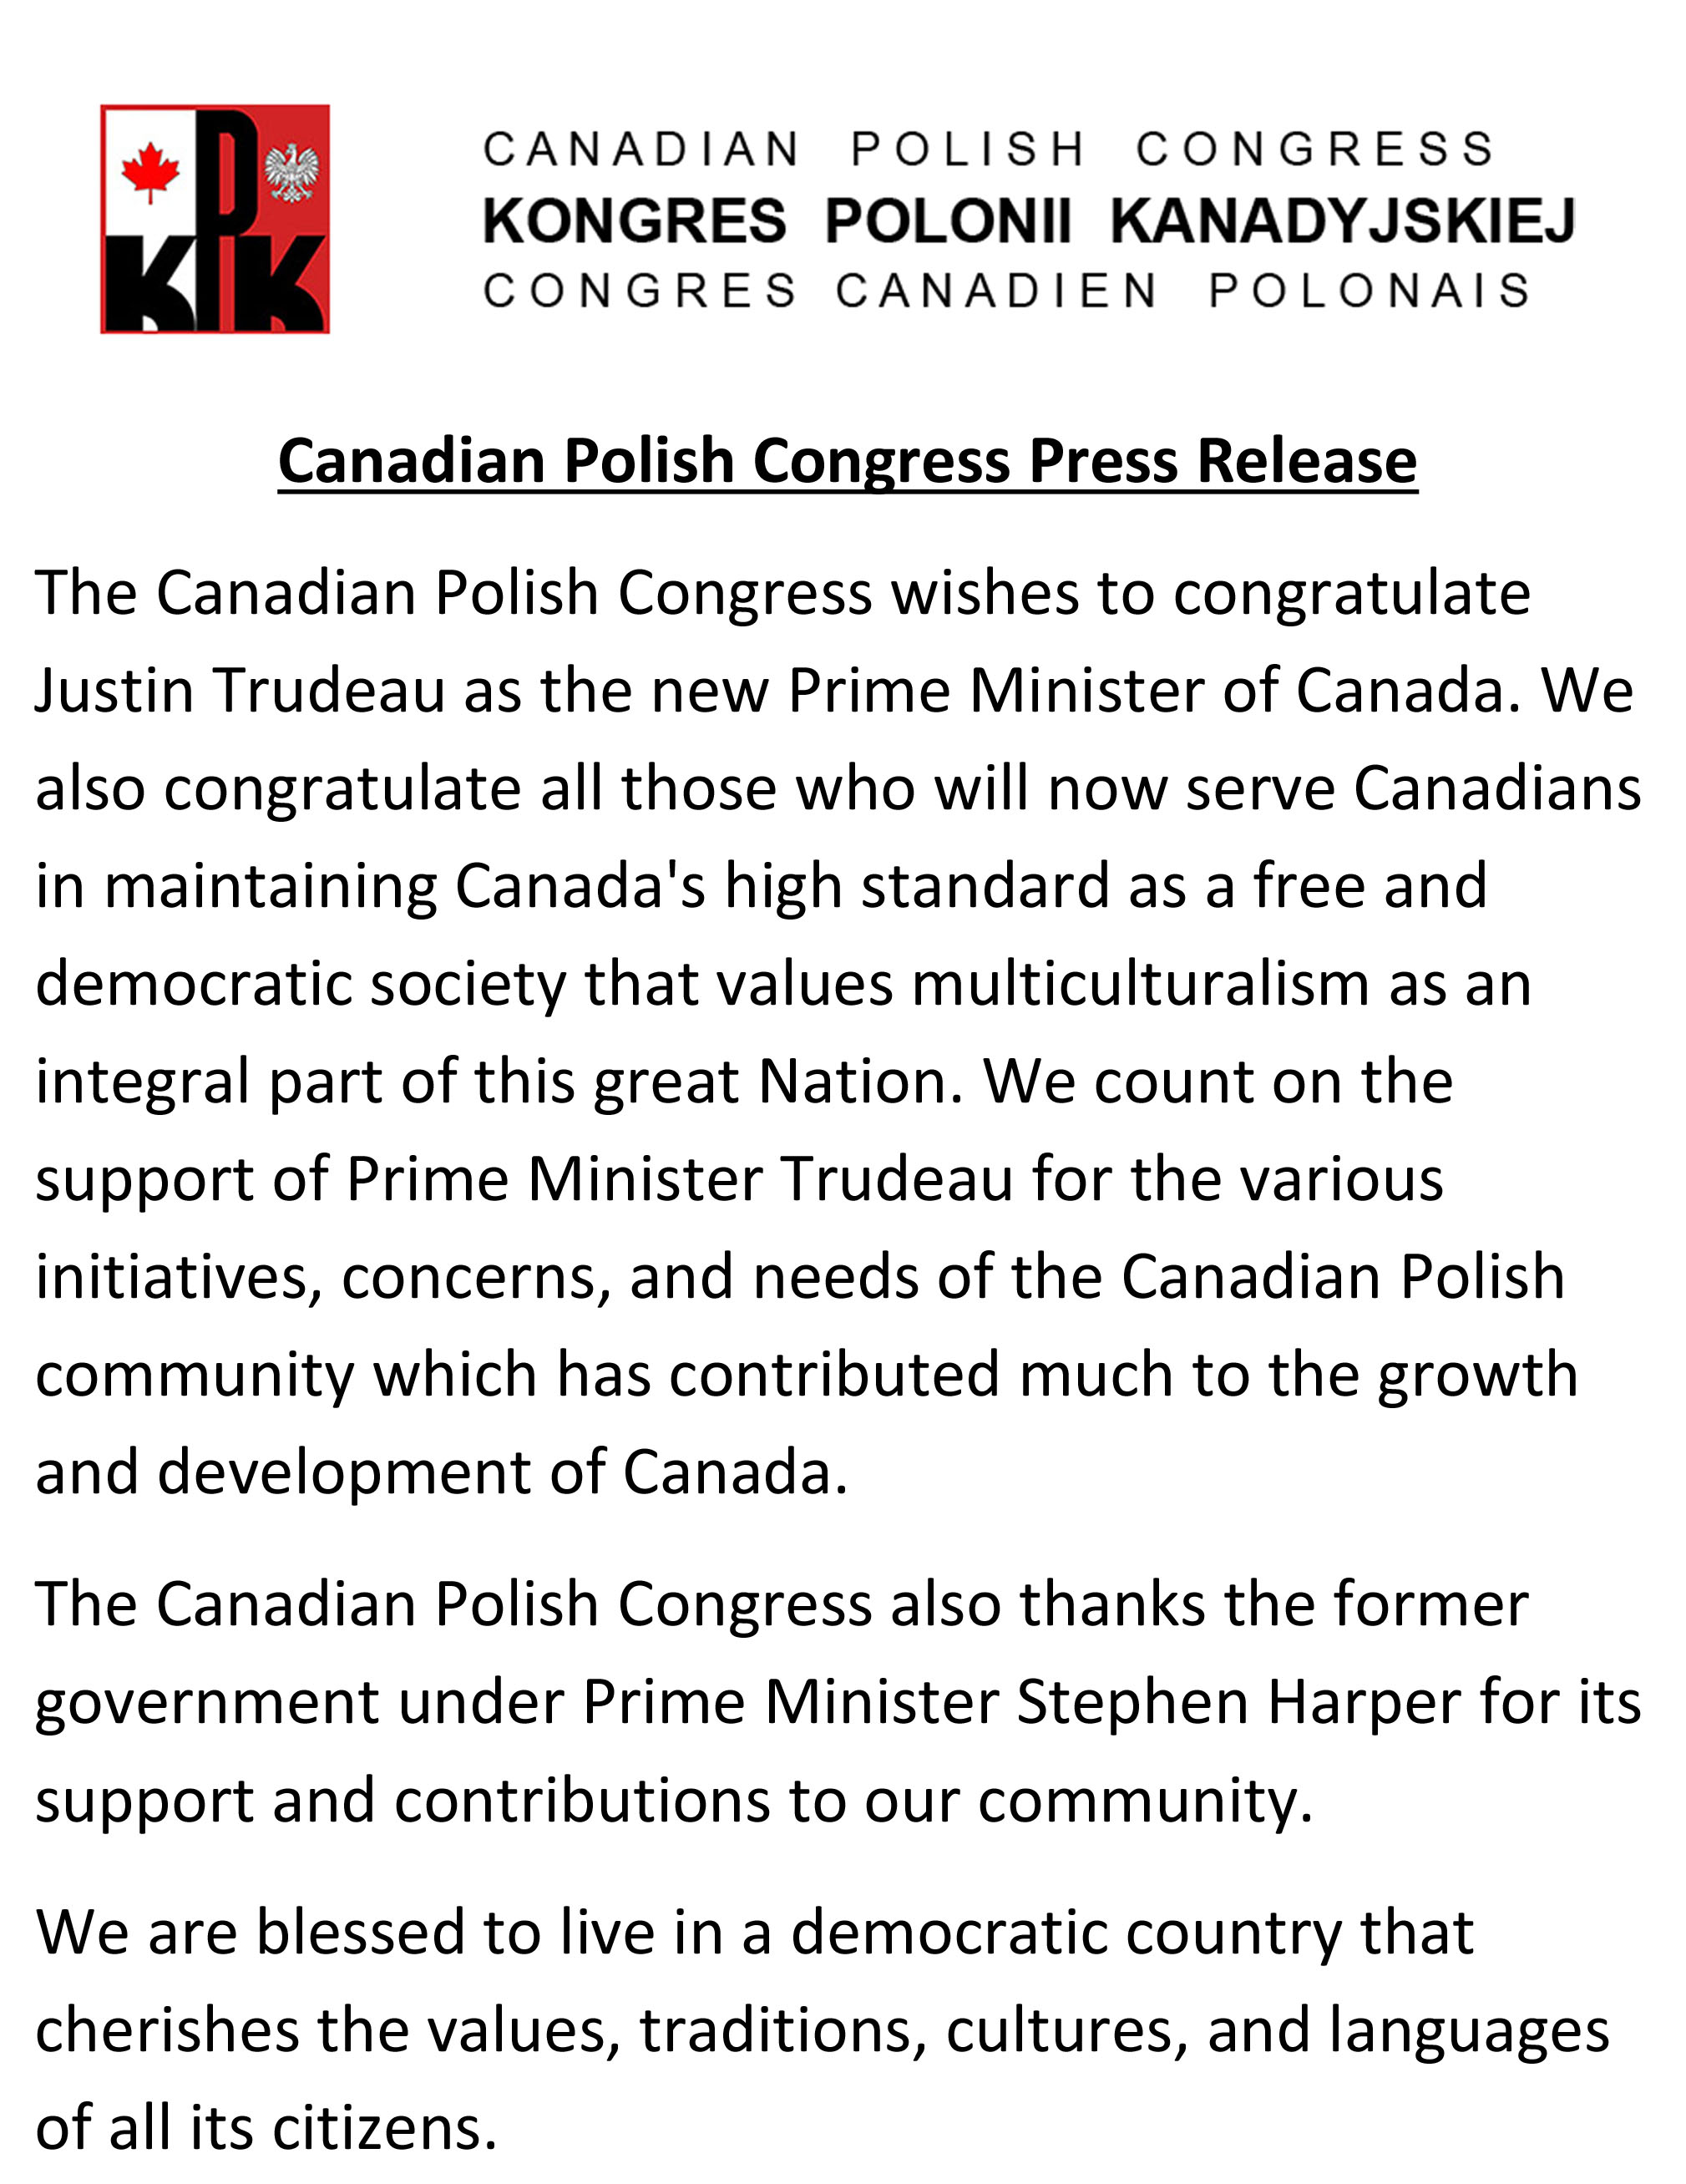 KPK Canadian Polish Congress Press Release elections 2015